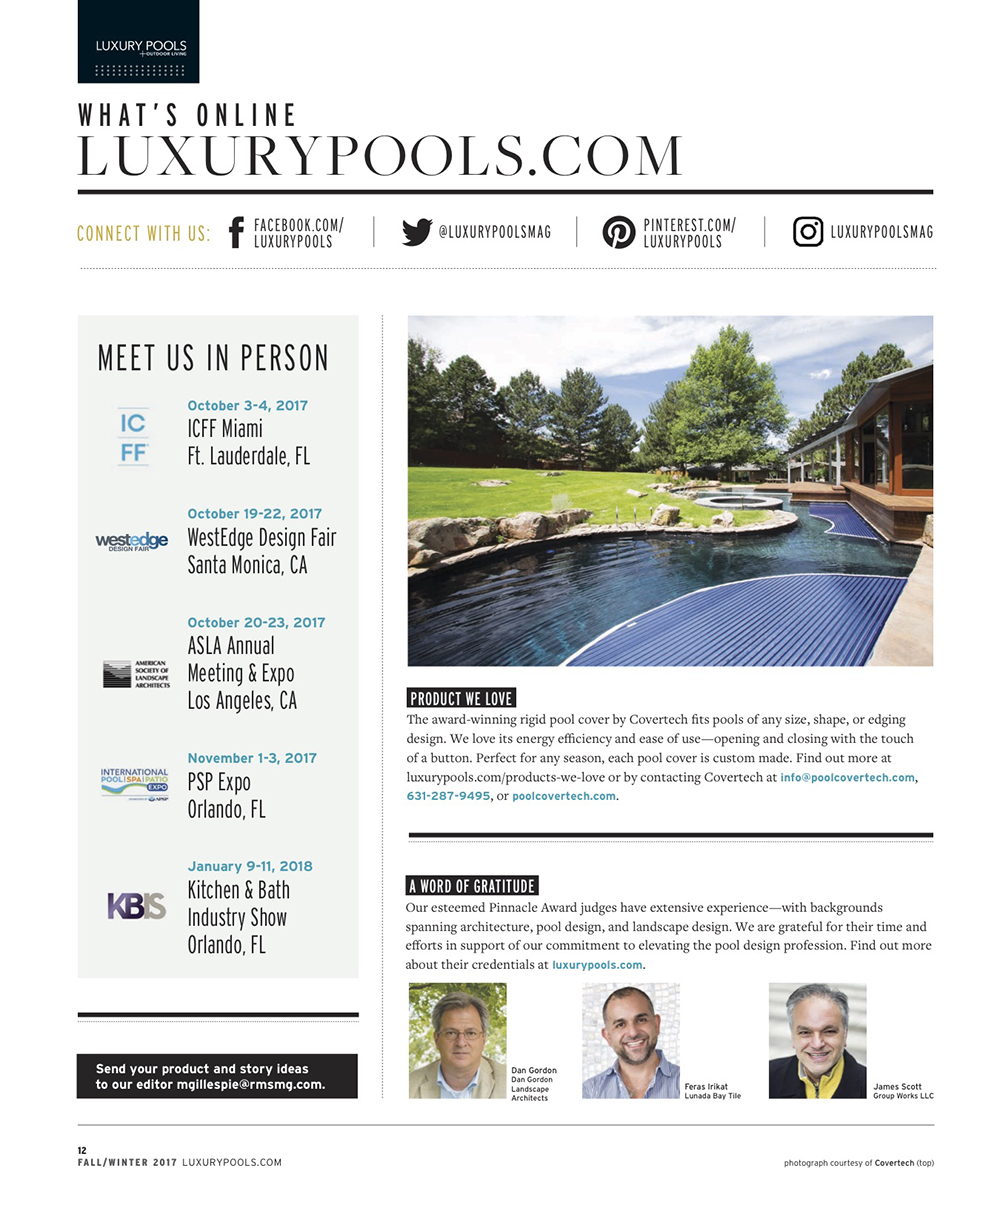 Luxury Pools Ad Covertech